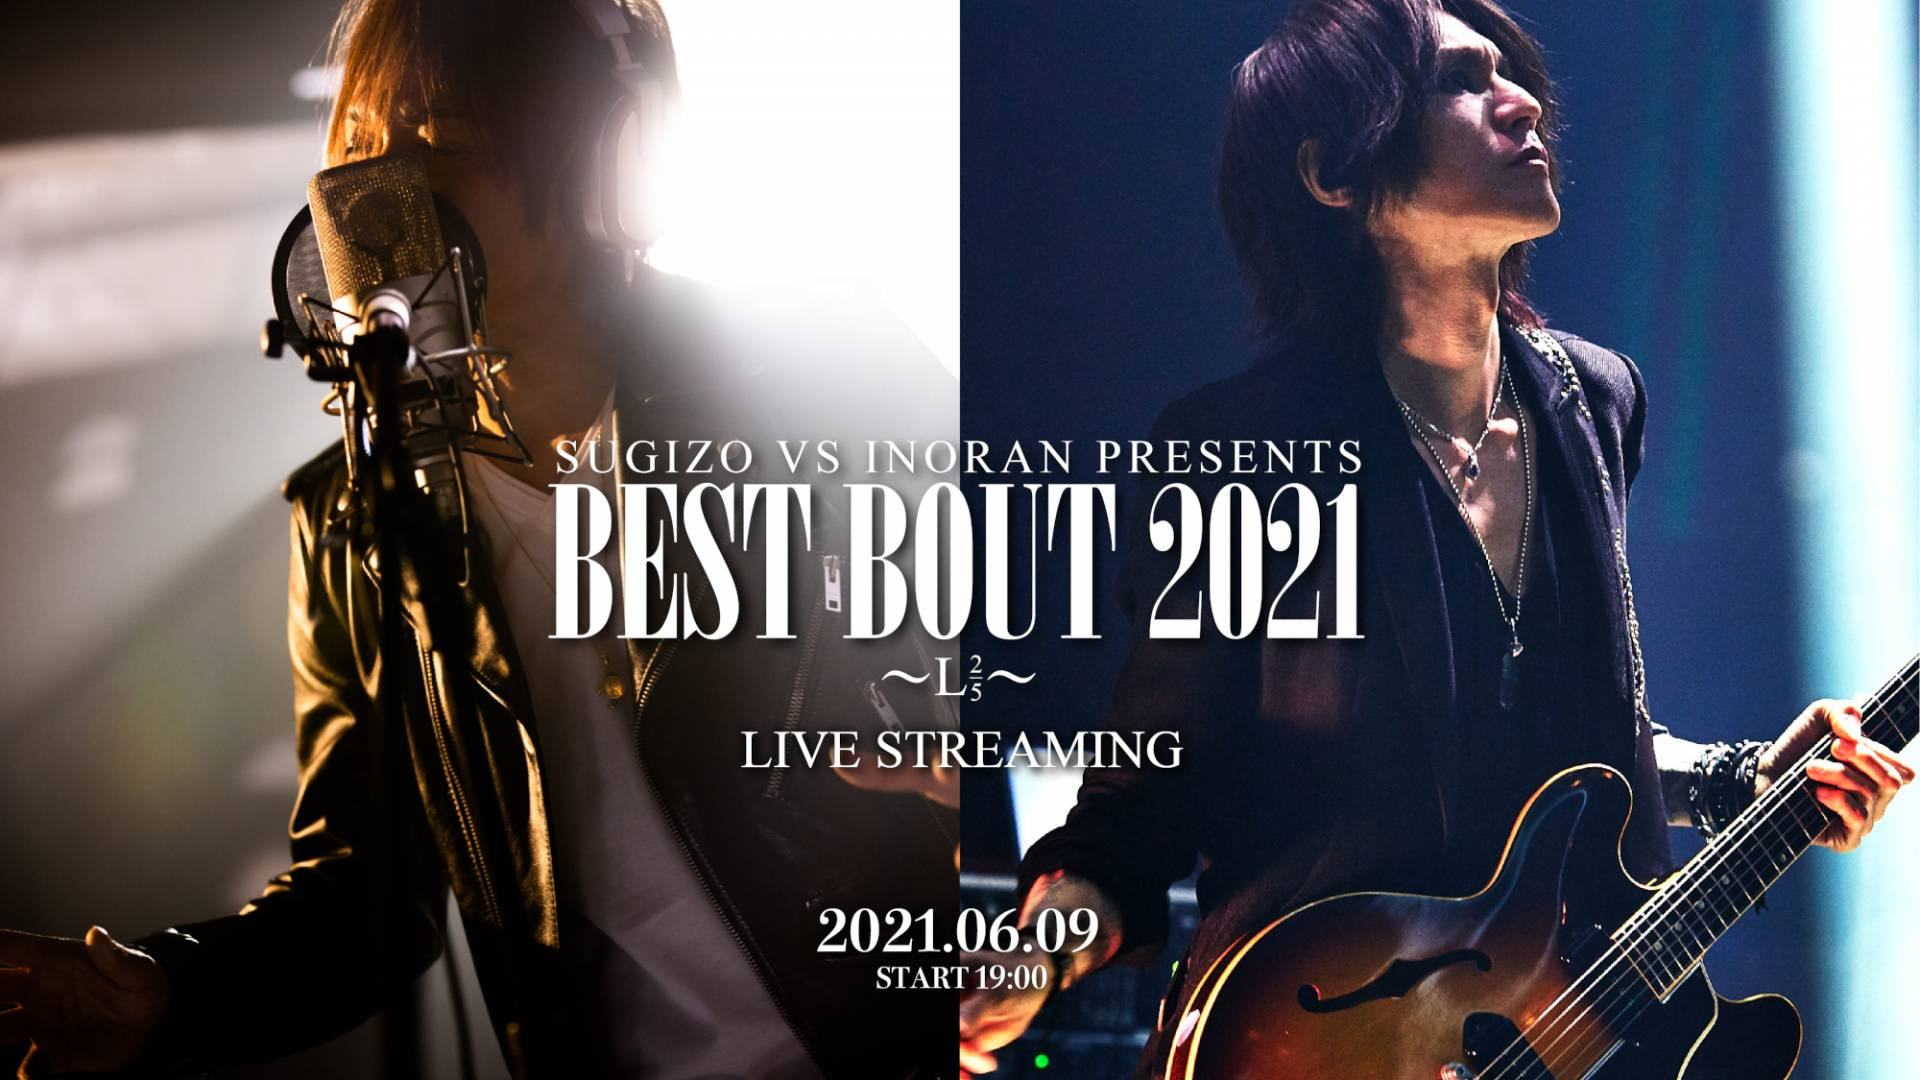 """Tickets are now on sale for SUGIZO and INORAN's live stream """"battle"""" event """"SUGIZO vs INORAN PRESENTS BEST BOUT 2021~L2/5~"""""""